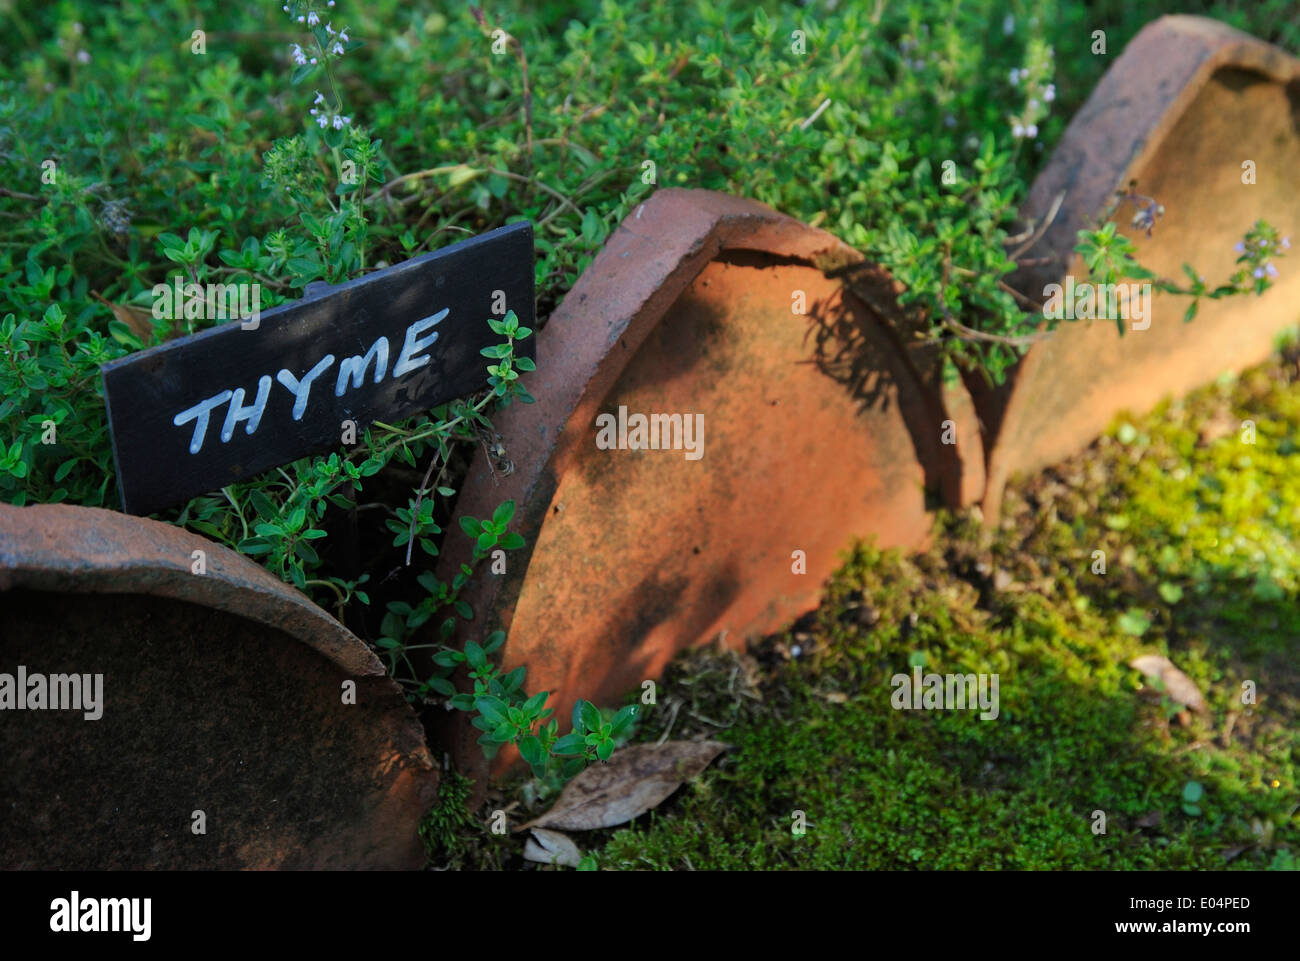 View of Thyme sign in country garden growing fresh herbs for healthy cooking of flavourful food Plants Colours - Stock Image